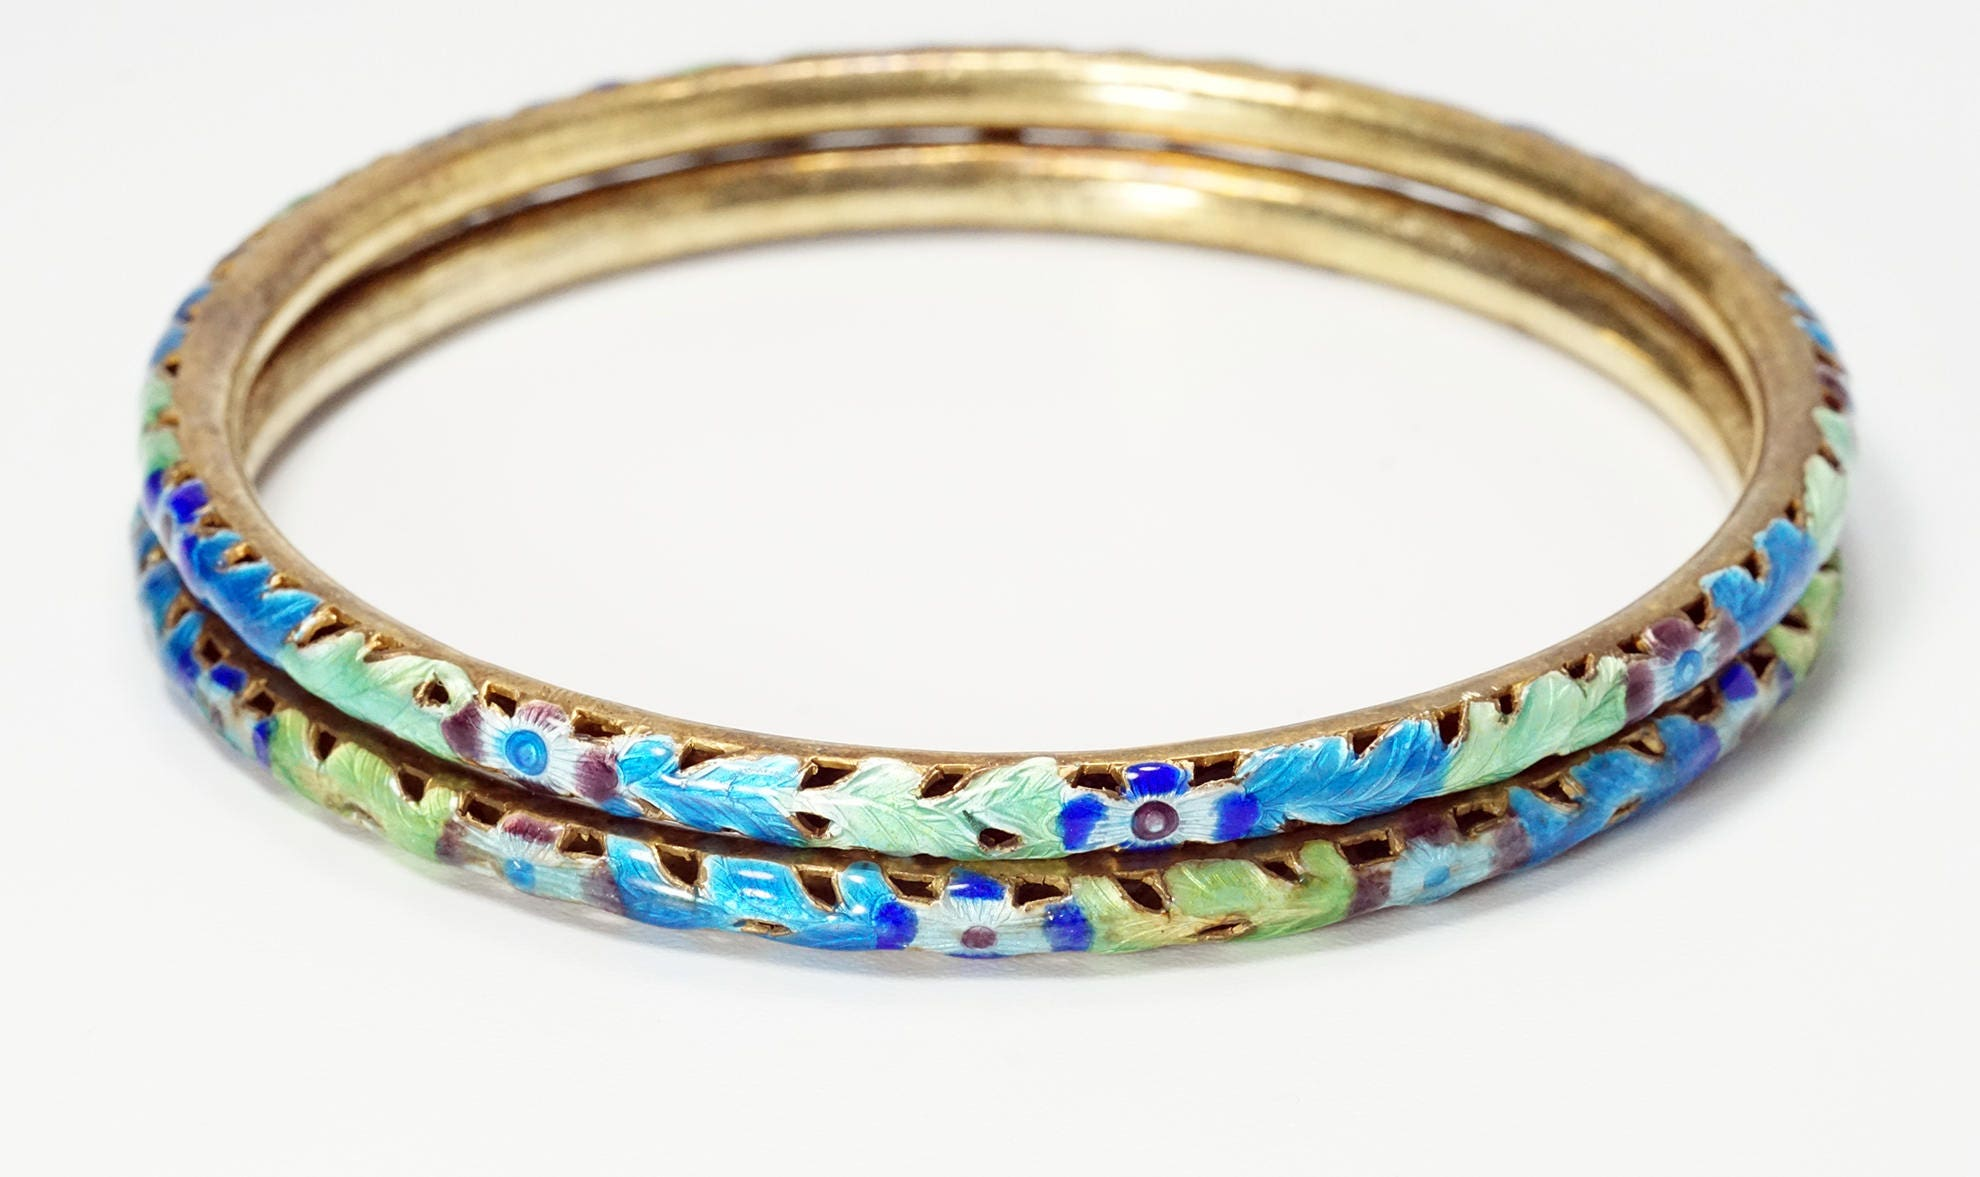 bangles bangle enamel view fullscreen vintage gold hermes in herm jewelry metallic s lyst